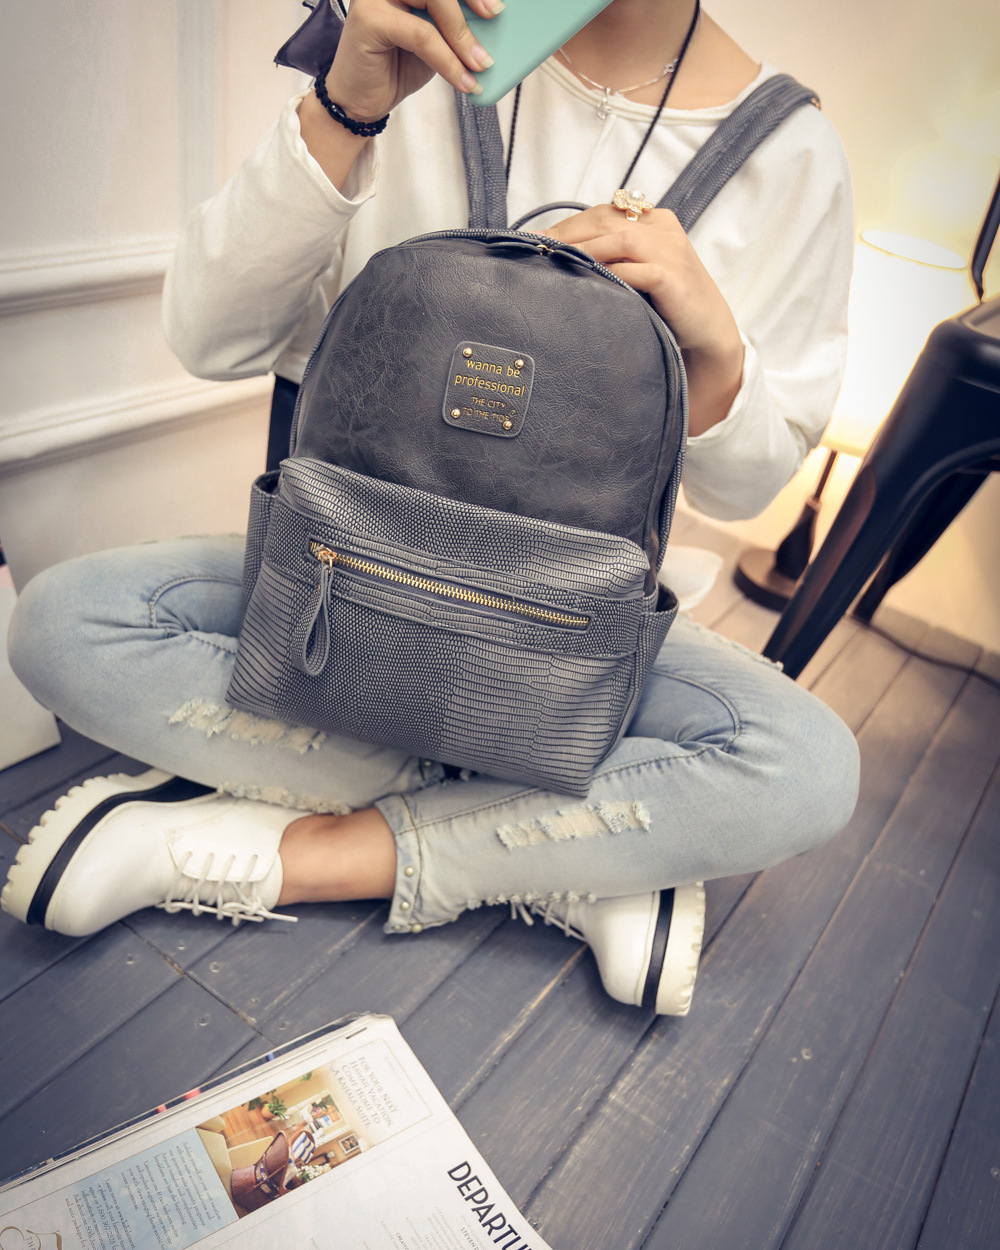 2016 Fashion Brand Women Black Leather Backpack For College Travel Vintage Female Plaid Backpacks Agers School Bags In From Luge On